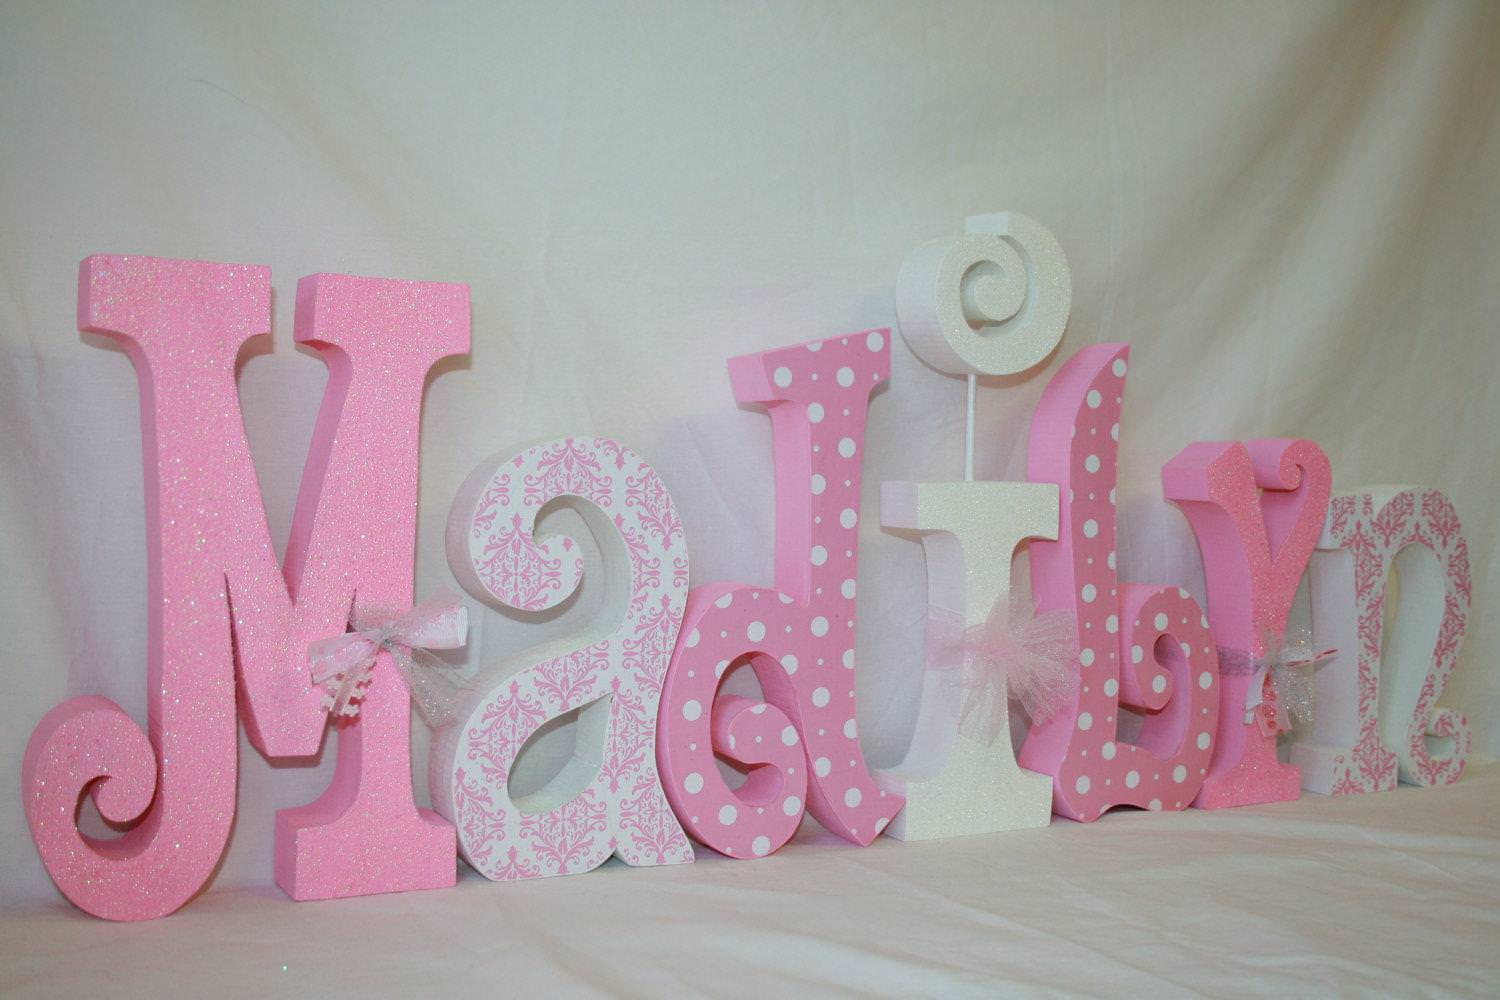 Baby Name Letters For Nursery Wall